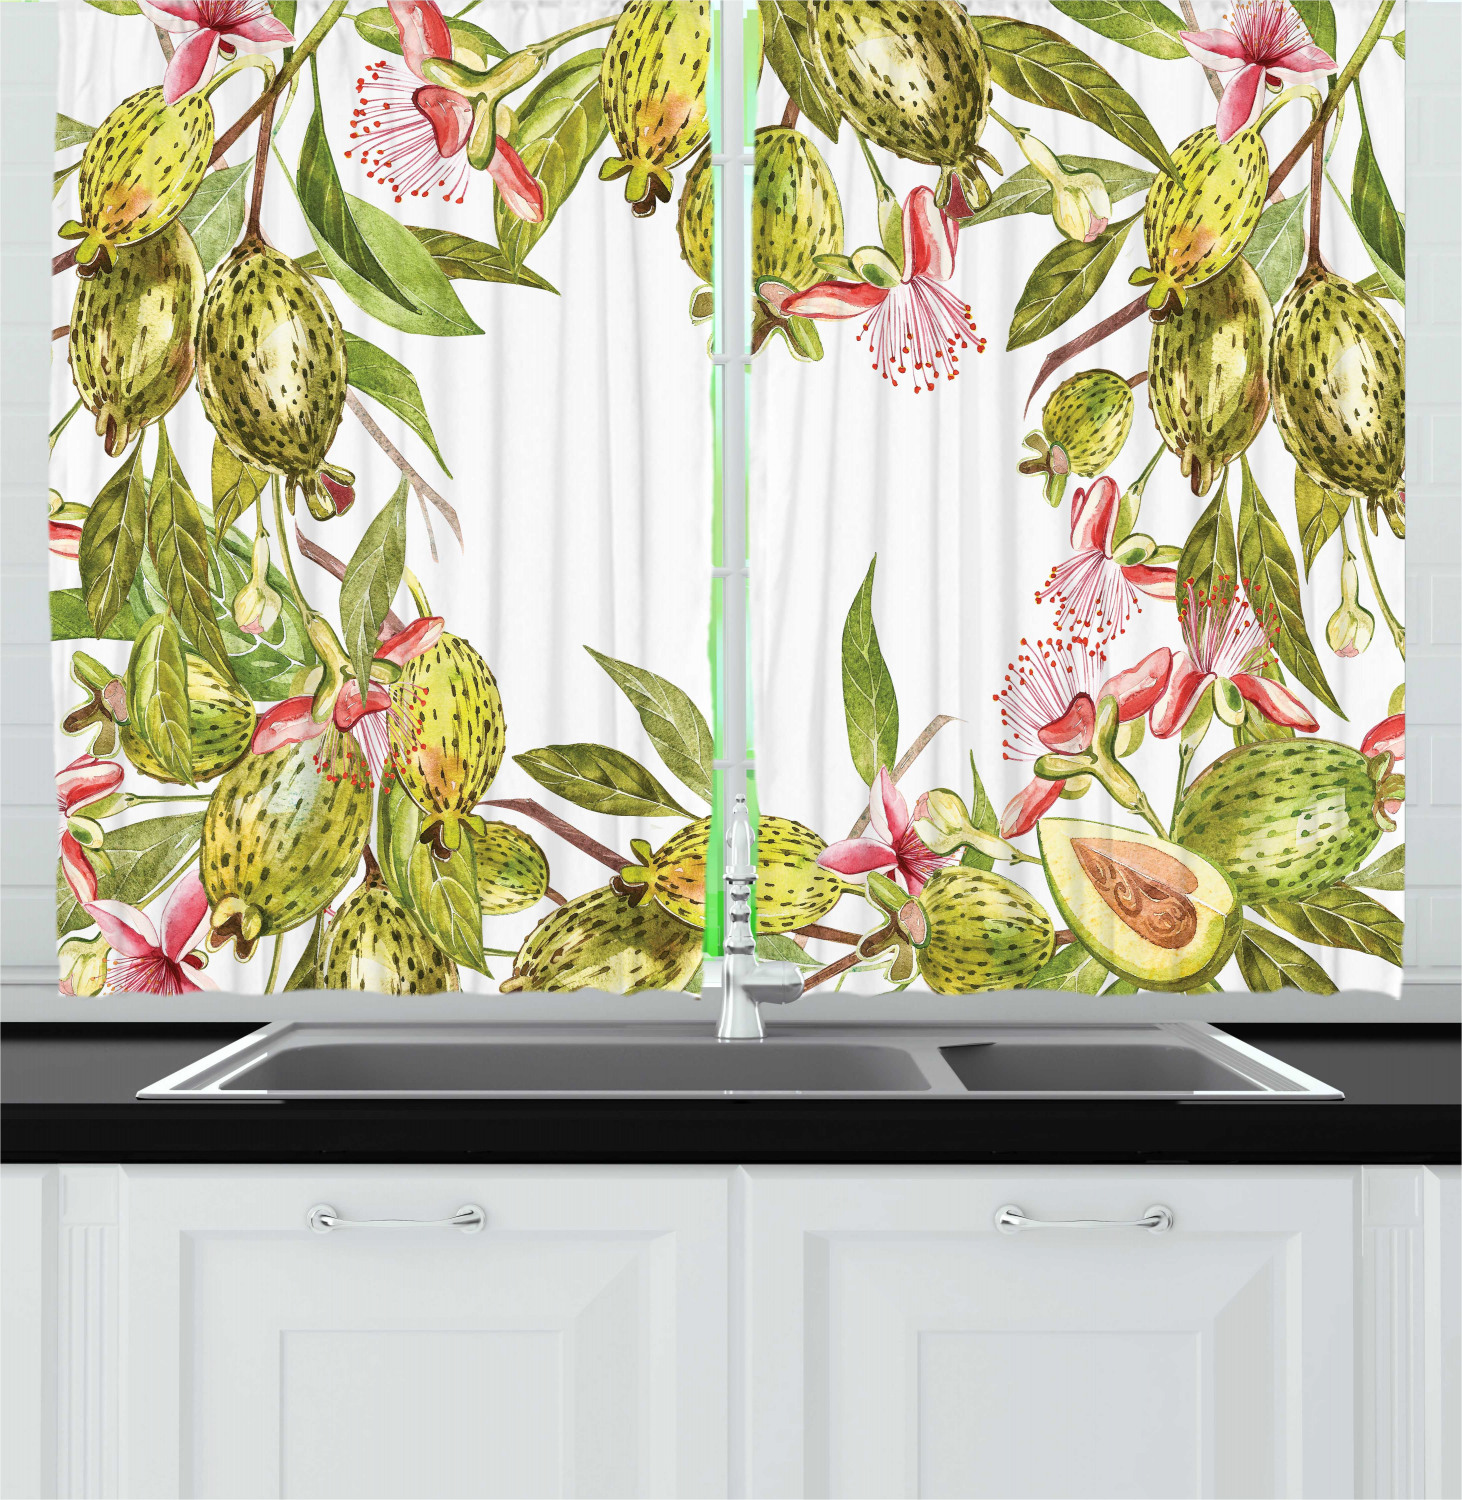 Floral Curtains 2 Panels Set Feijoa Tropical Fruit Plant With Exotic Leaves On Plain Background Window Drapes For Living Room Bedroom 55 W X 39 L Avocado Green Coral White By Ambesonne Walmart Com